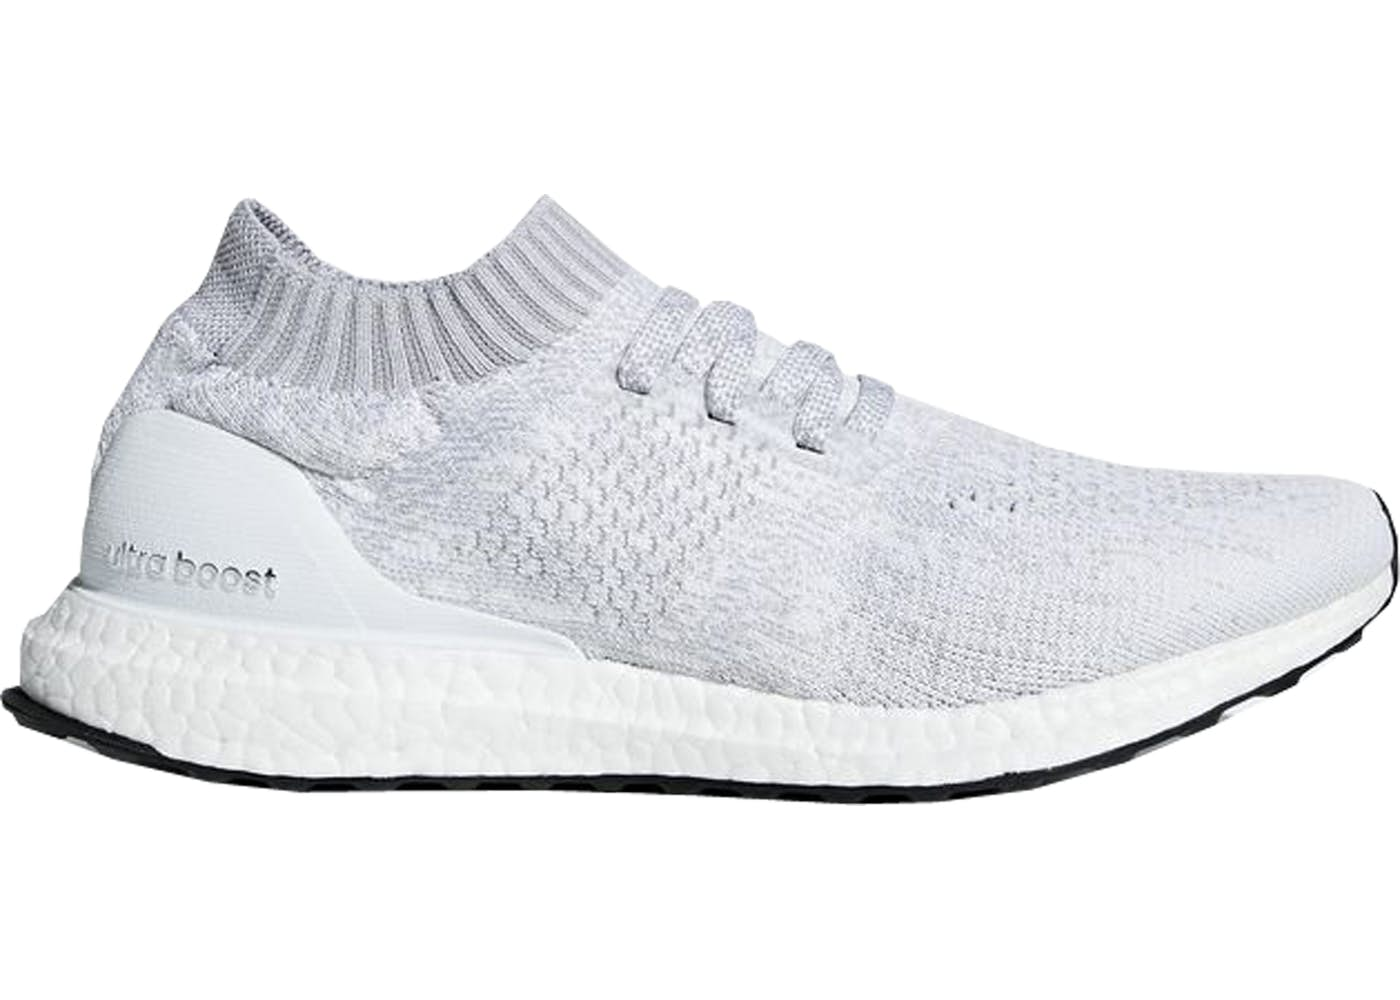 adidas ultra boost uncaged white tint. Black Bedroom Furniture Sets. Home Design Ideas